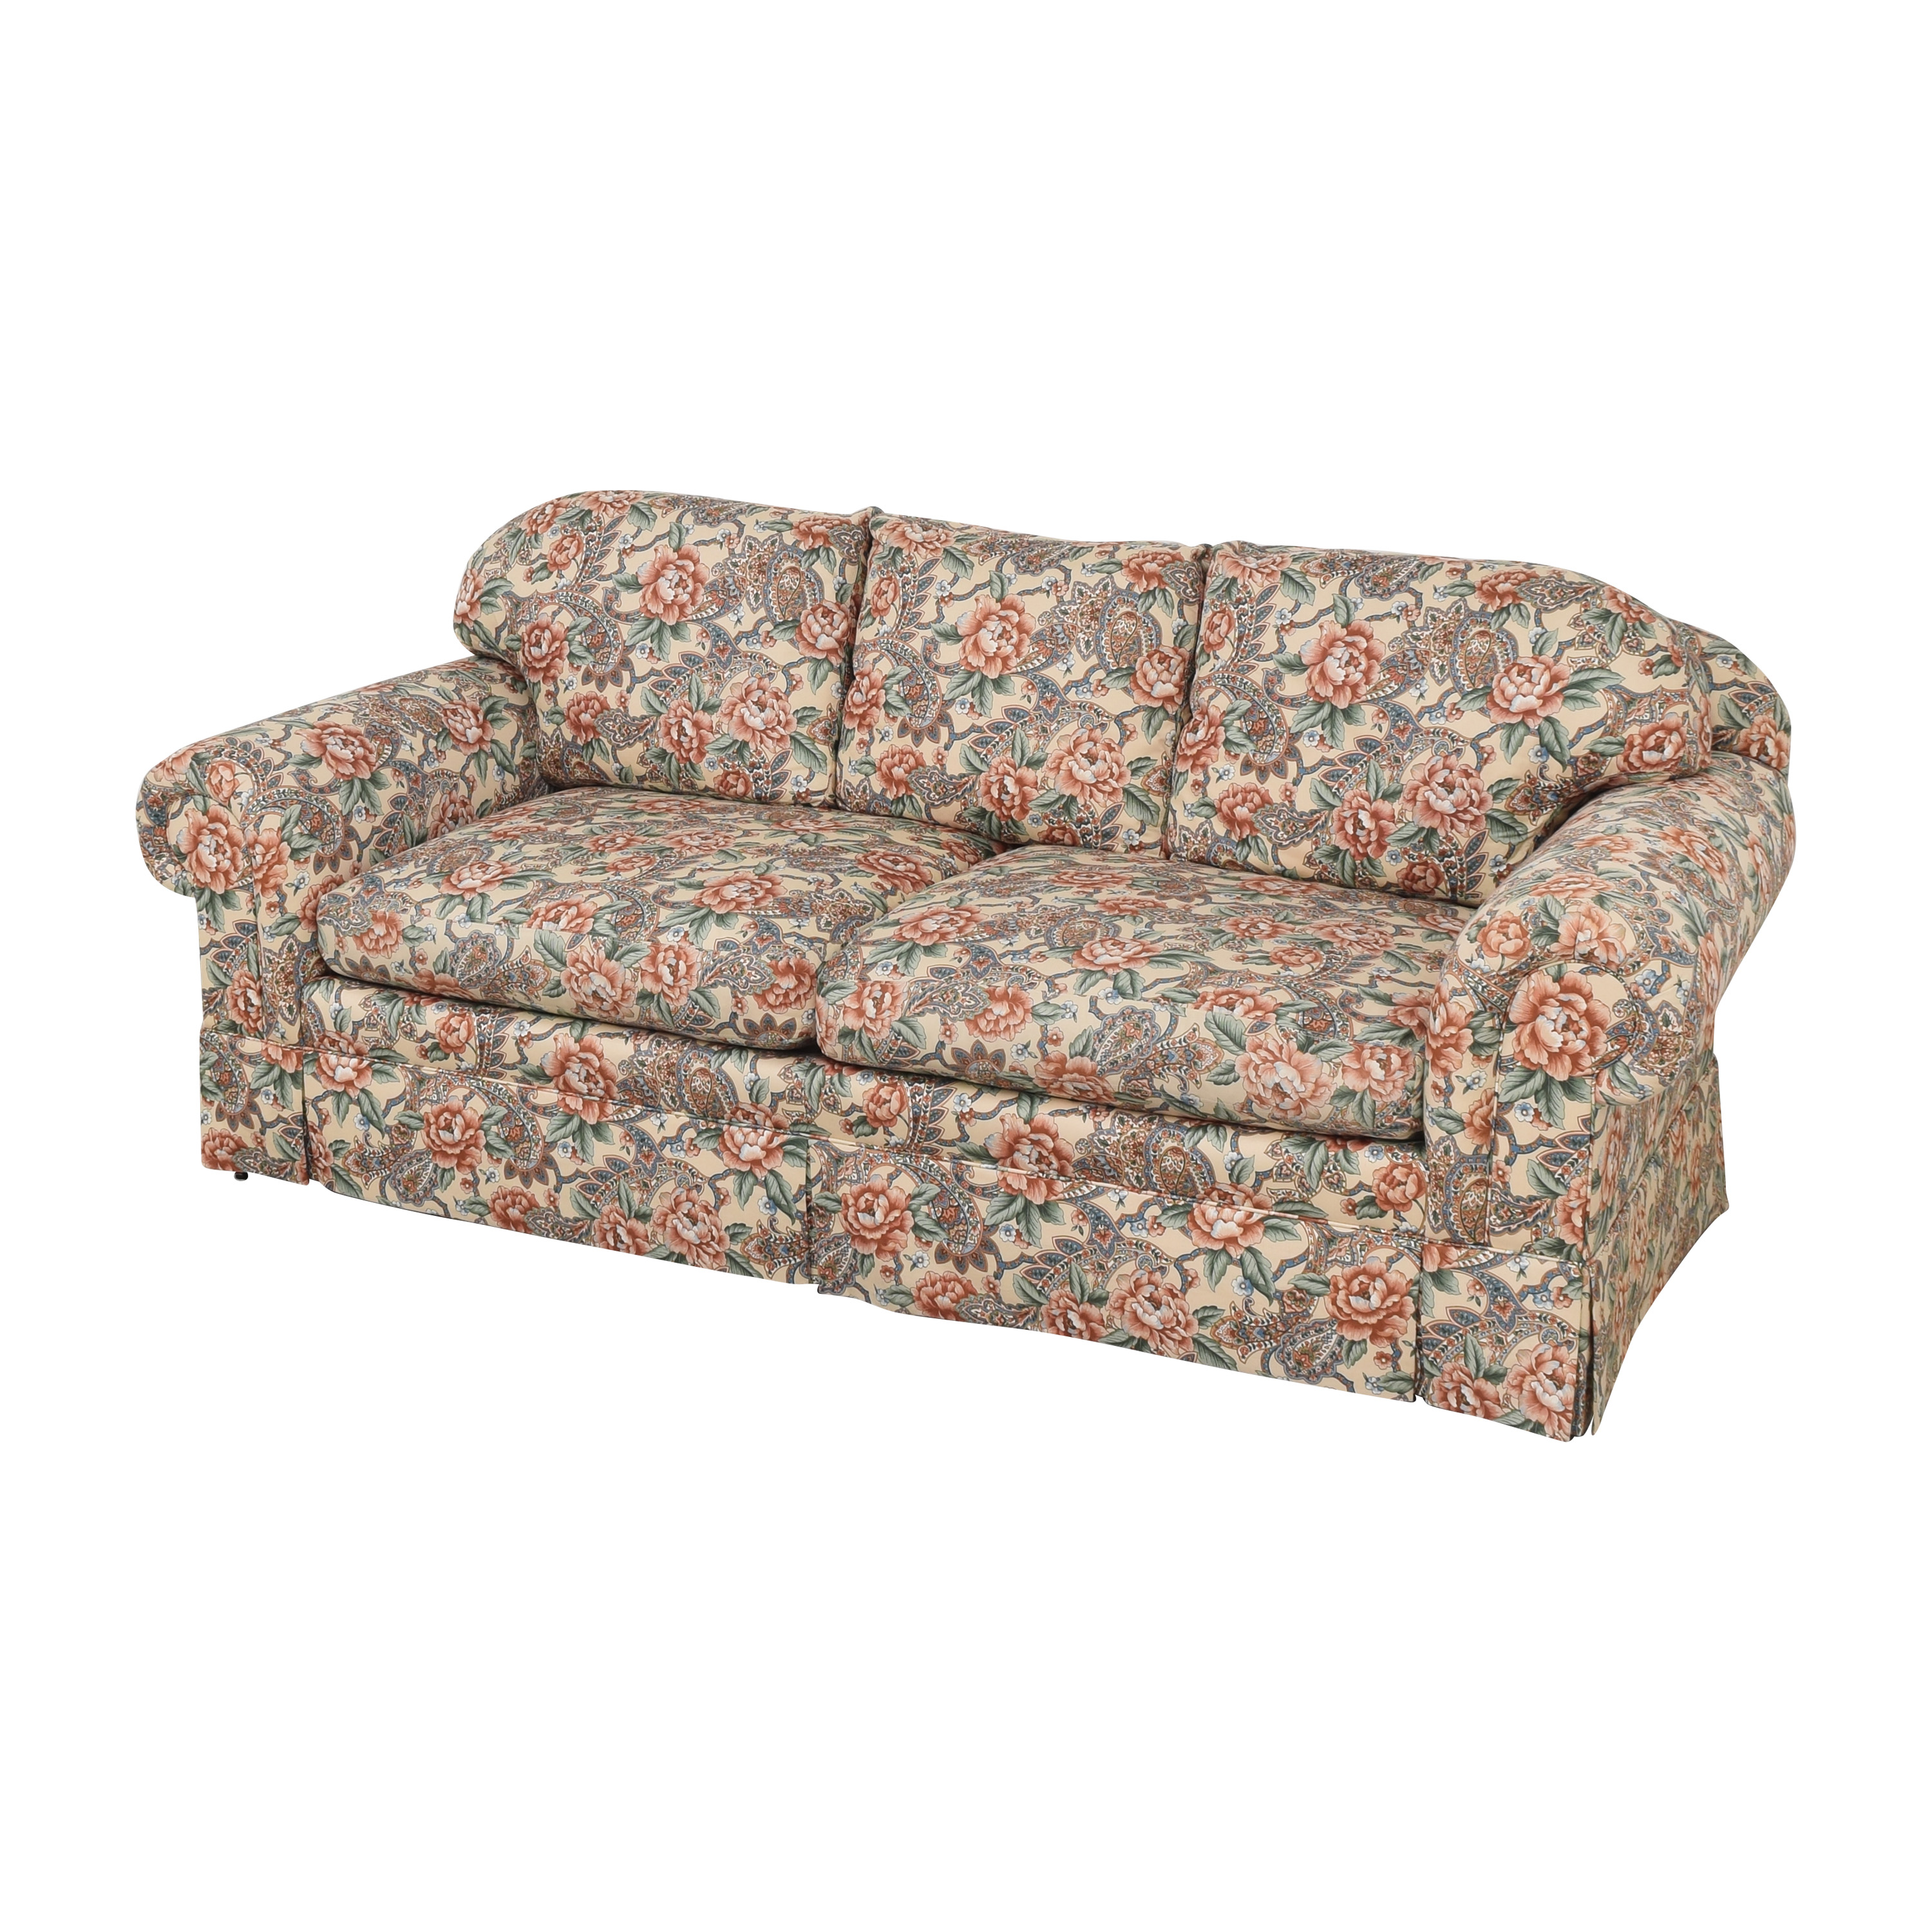 EJ Victor EJ Victor Floral and Paisley Skirted Sofa ma